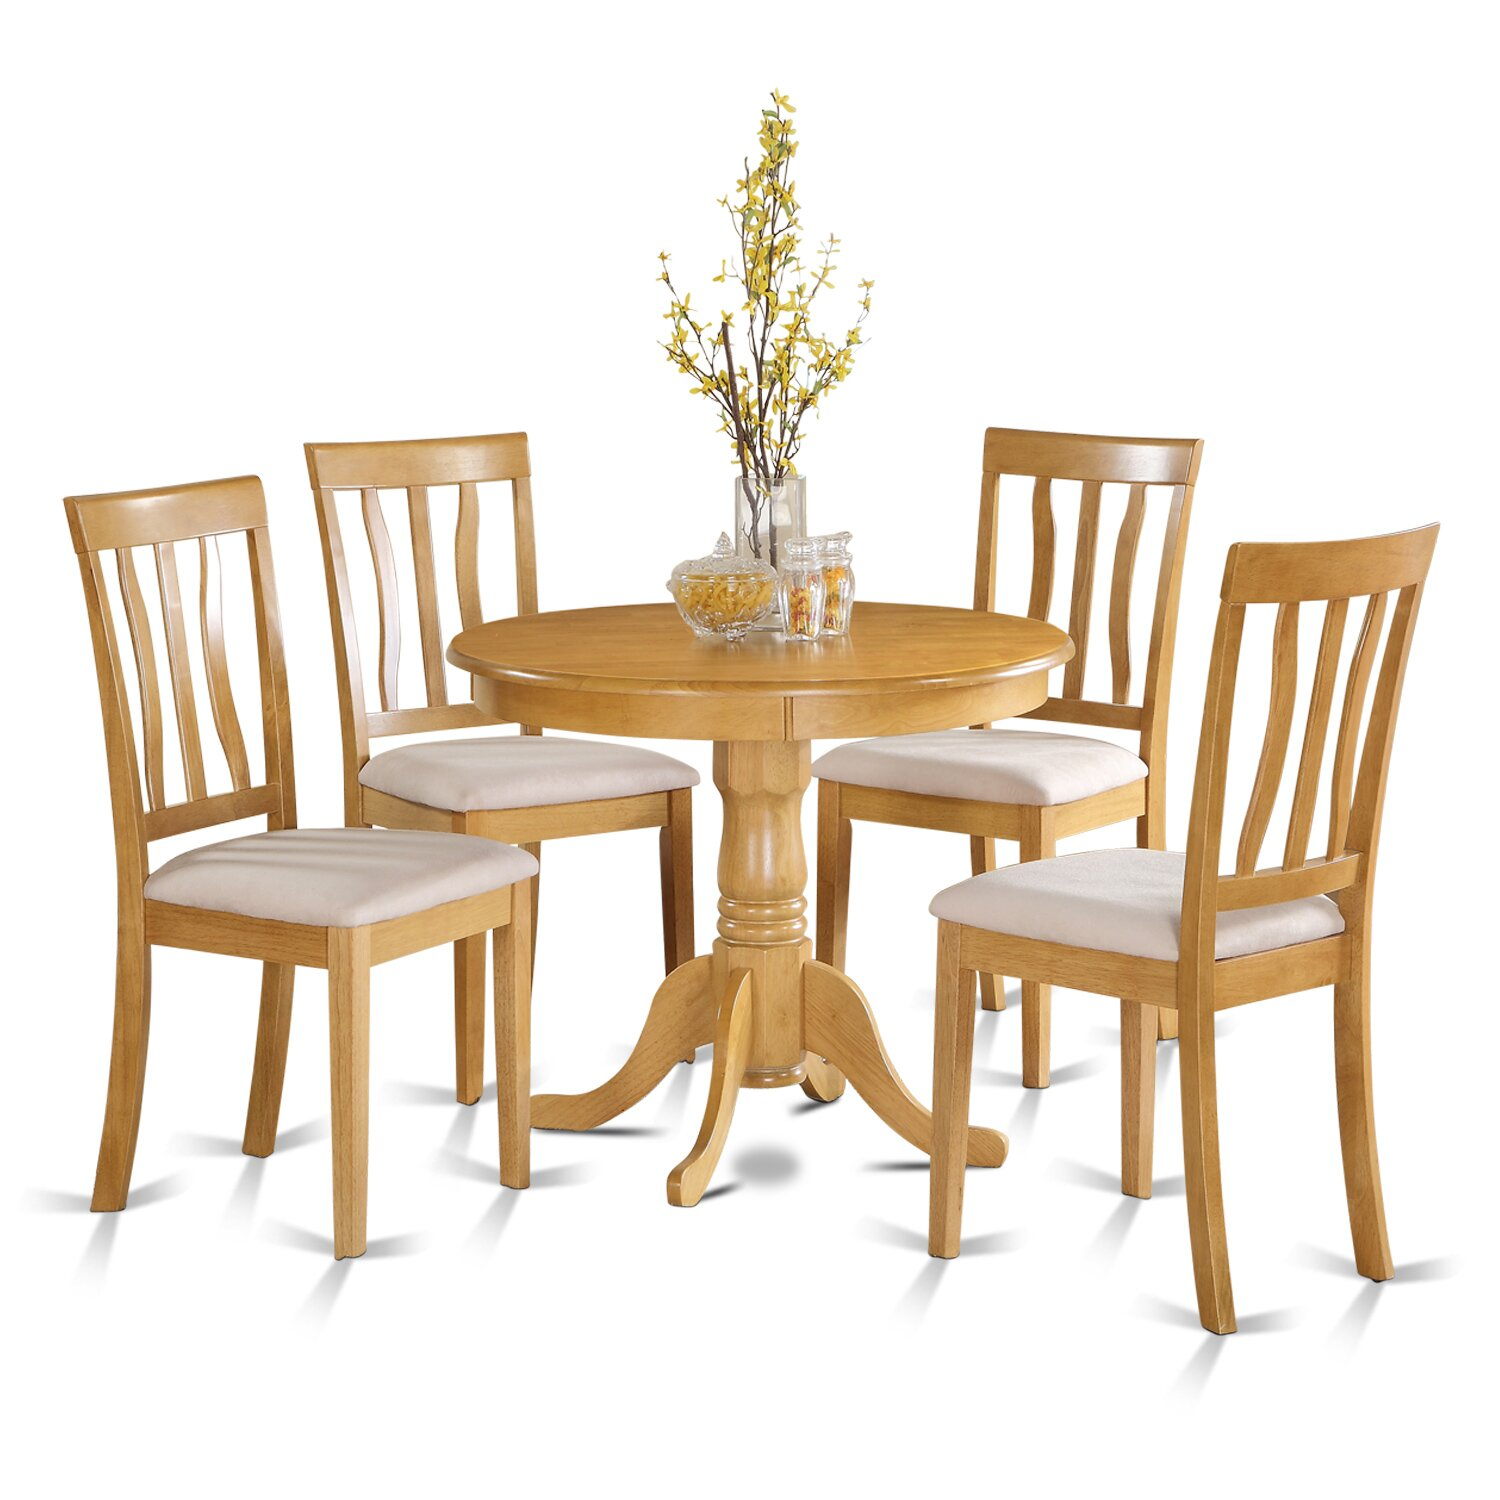 Wooden importers 5 piece dining set reviews wayfair for Small dining table with 4 chairs